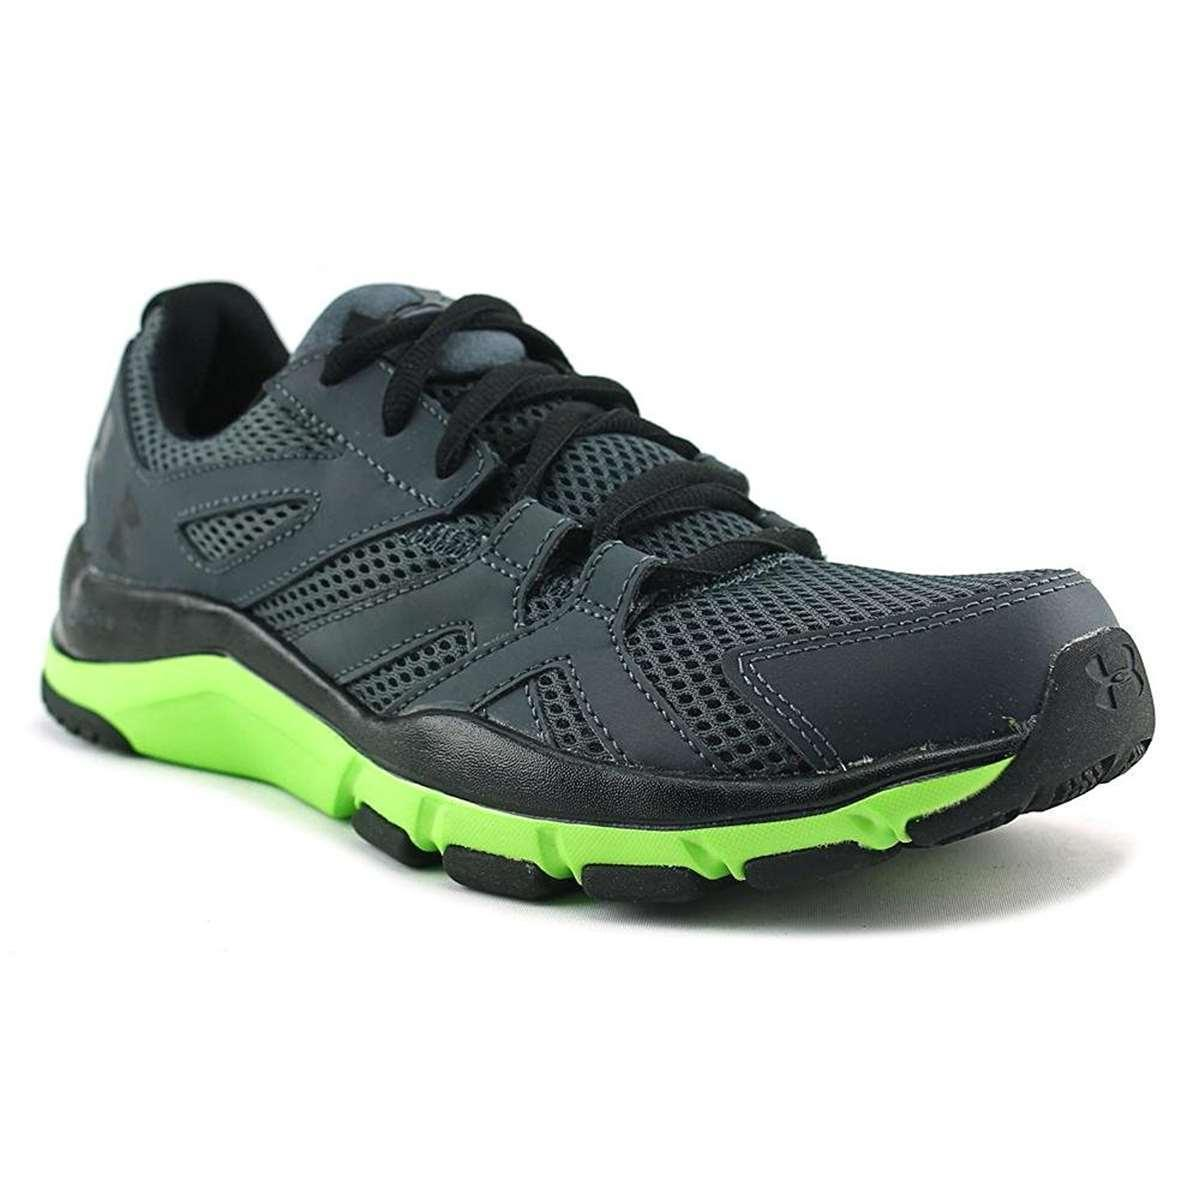 Mens Armour STRIVE 6 Sneakers 1274408-008 NEW